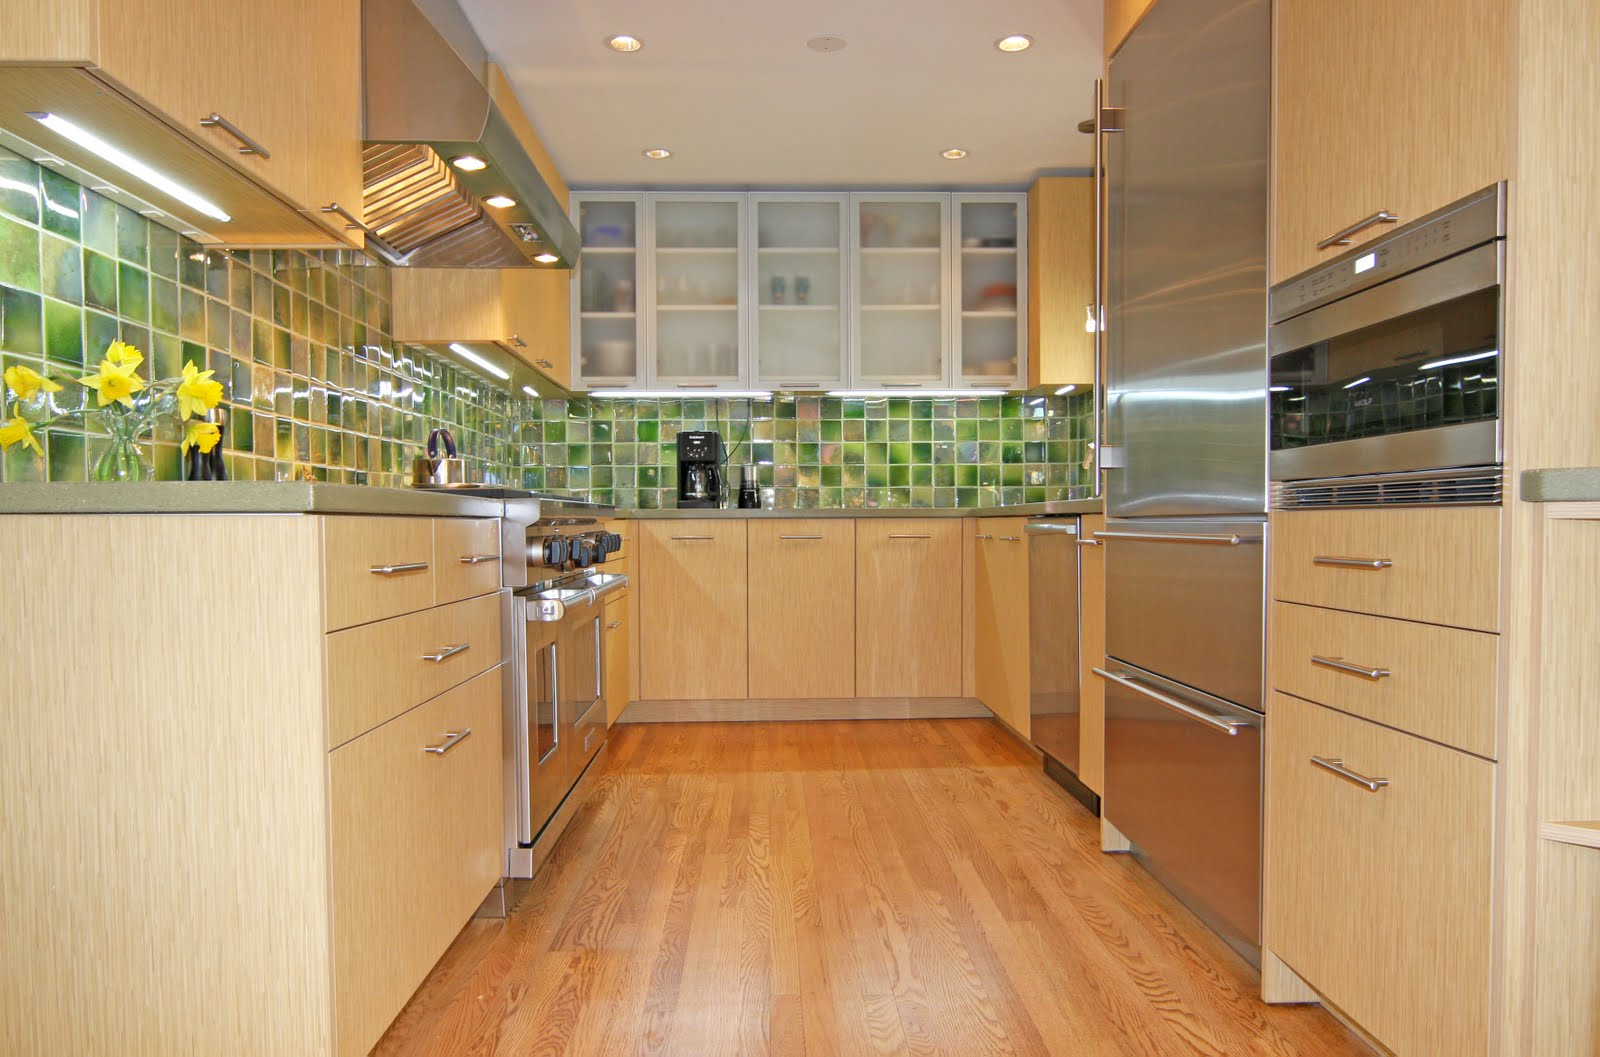 ... : Green Remodel - Gourmet Galley Kitchen Remodel with Deconstruction